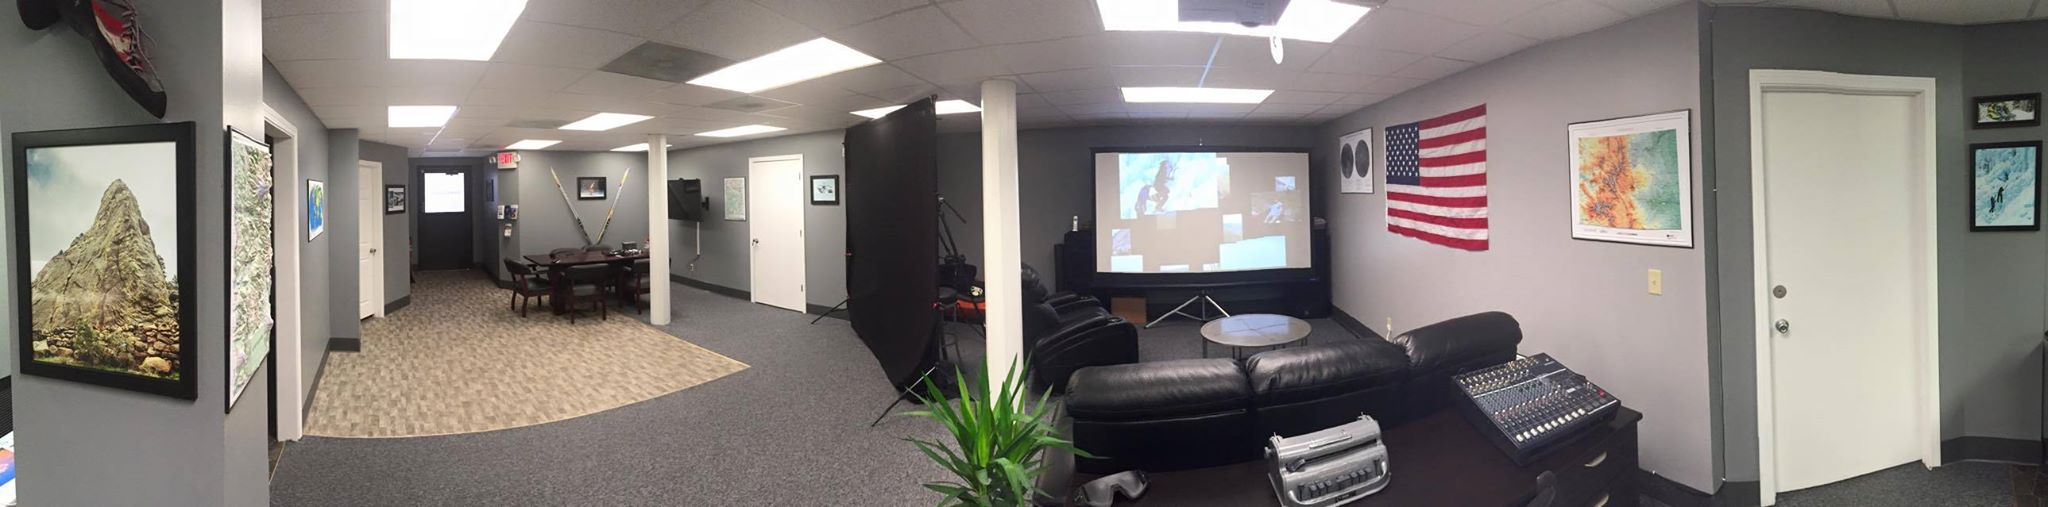 Interior photo of the Blind Endeavors Foundation Headquarters. Consists of a couple black reclining couches, large projection screen and adventurous photos on the wall.